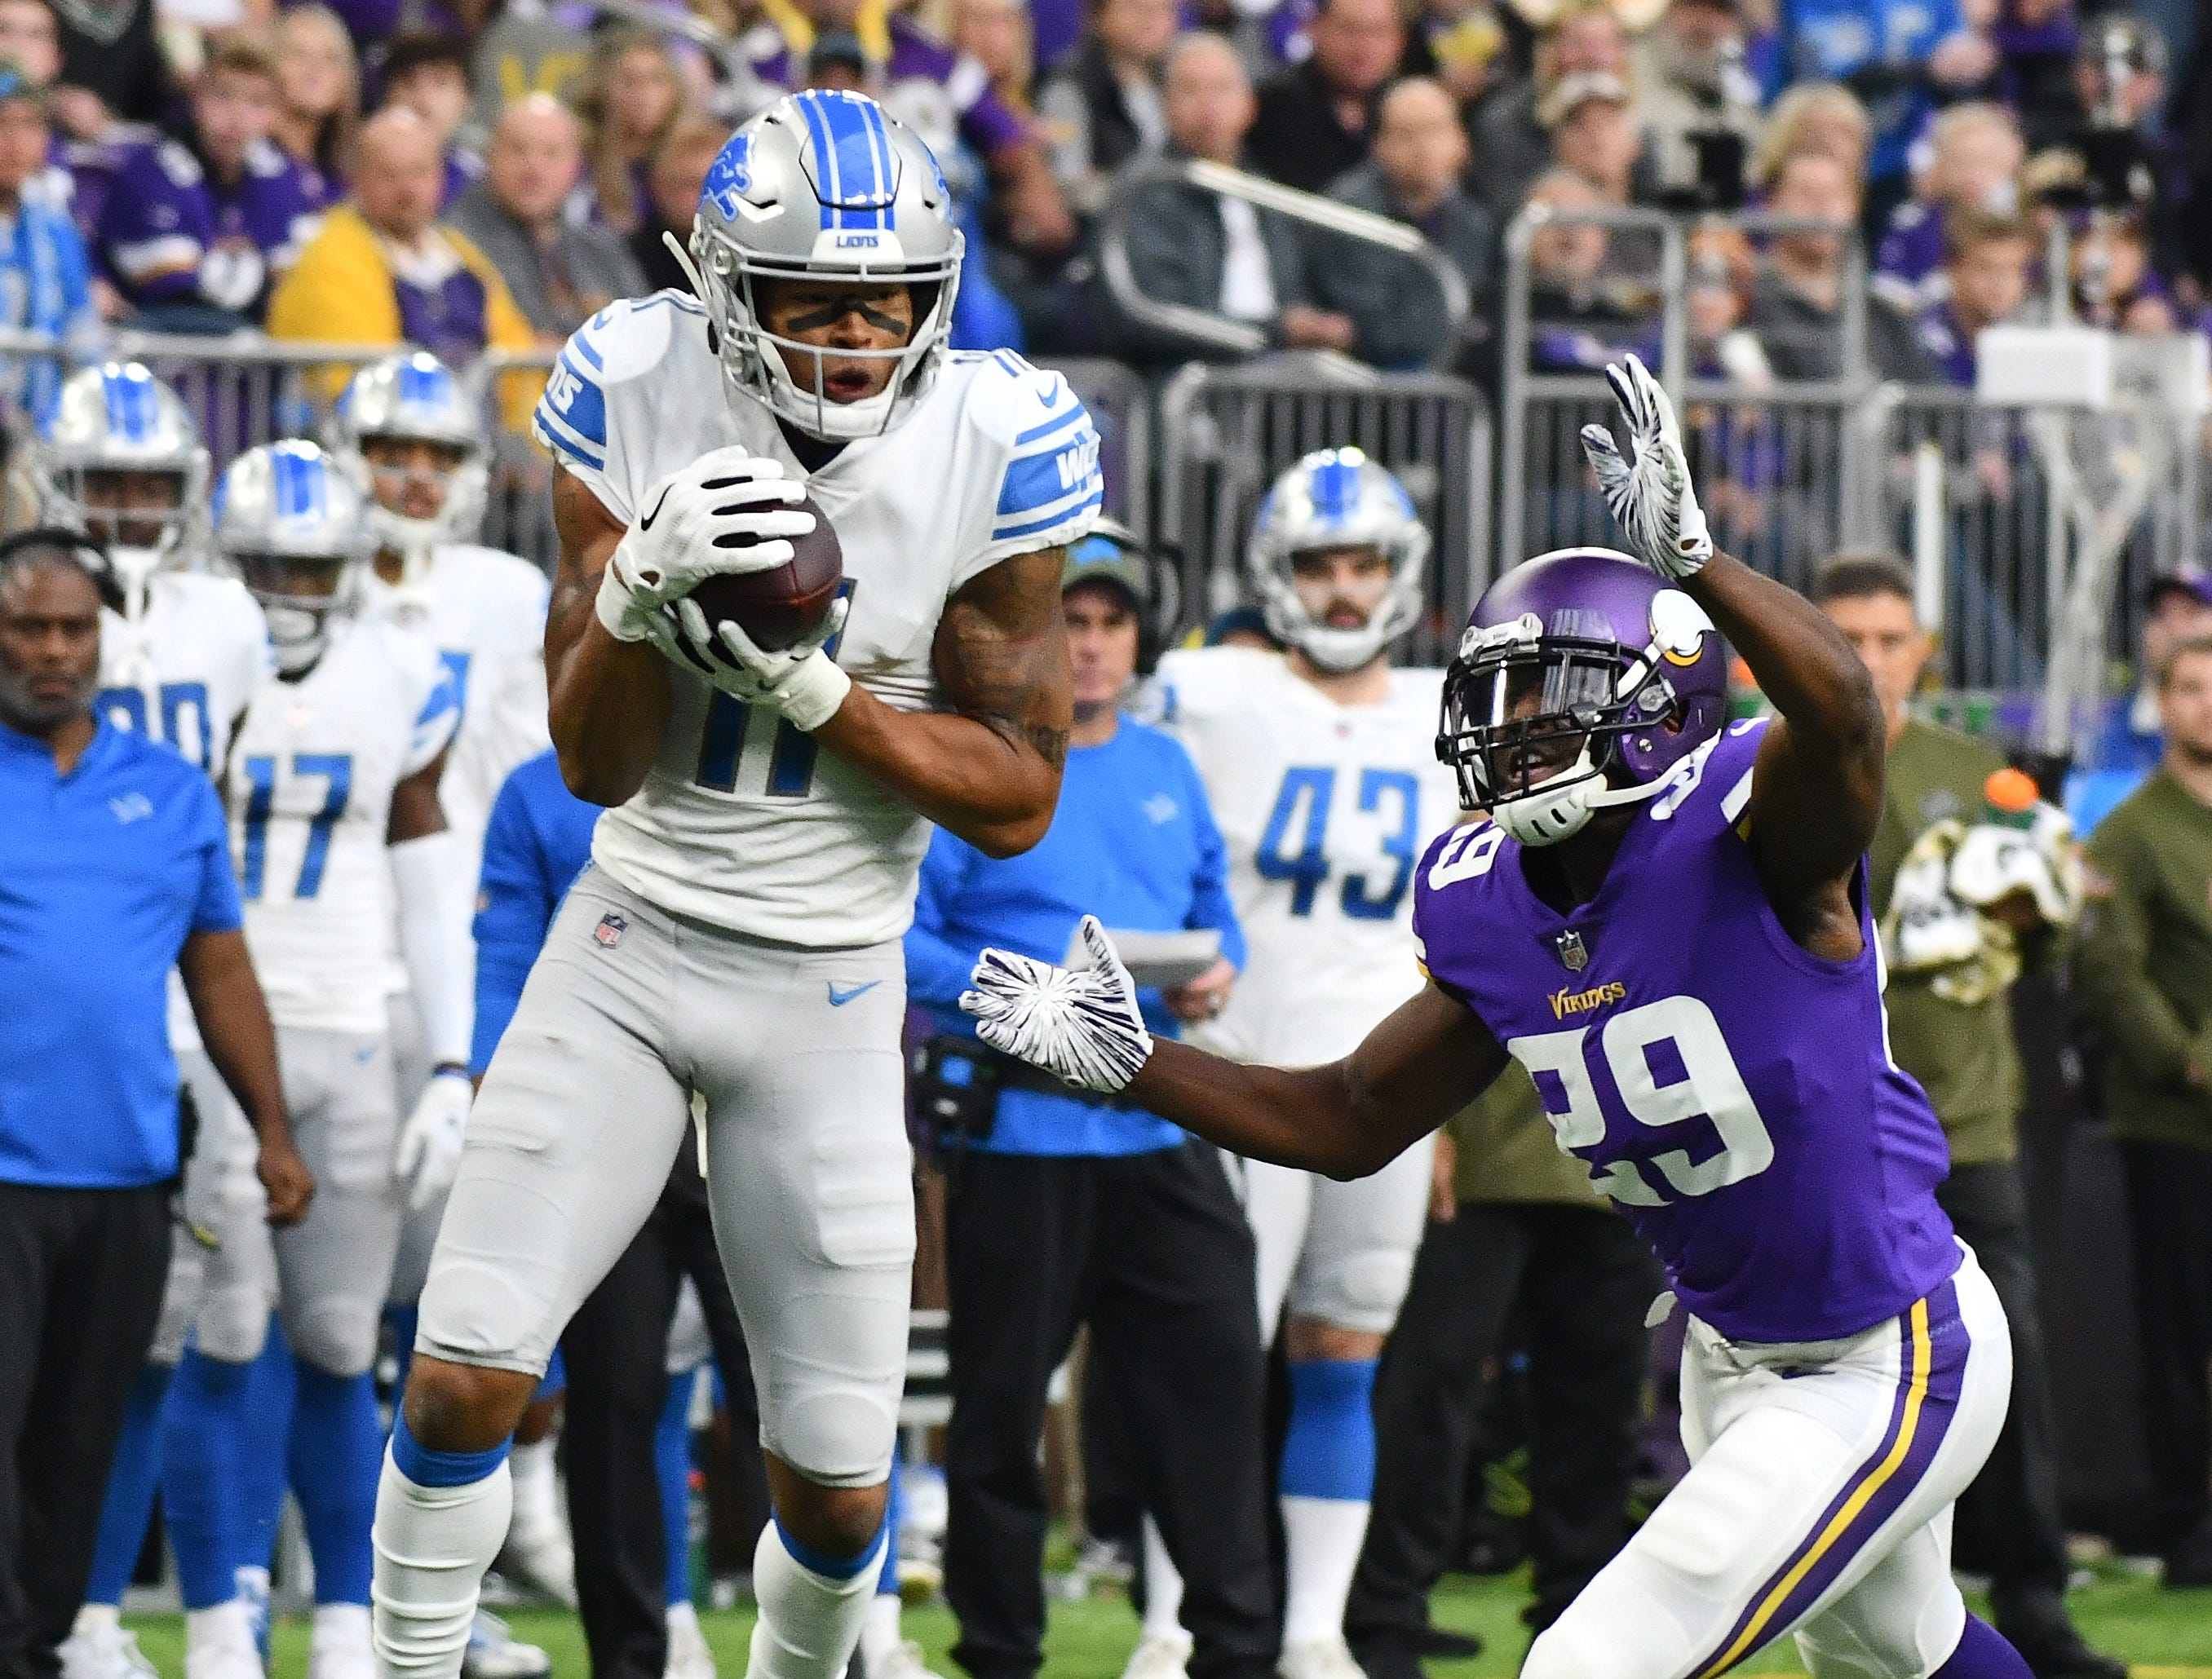 Lions wide receiver Marvin Jones Jr. makes a reception in front of Vikings' Xavier Rhodes but loses it as he is hit, rolling out of bounds, in the third quarter.